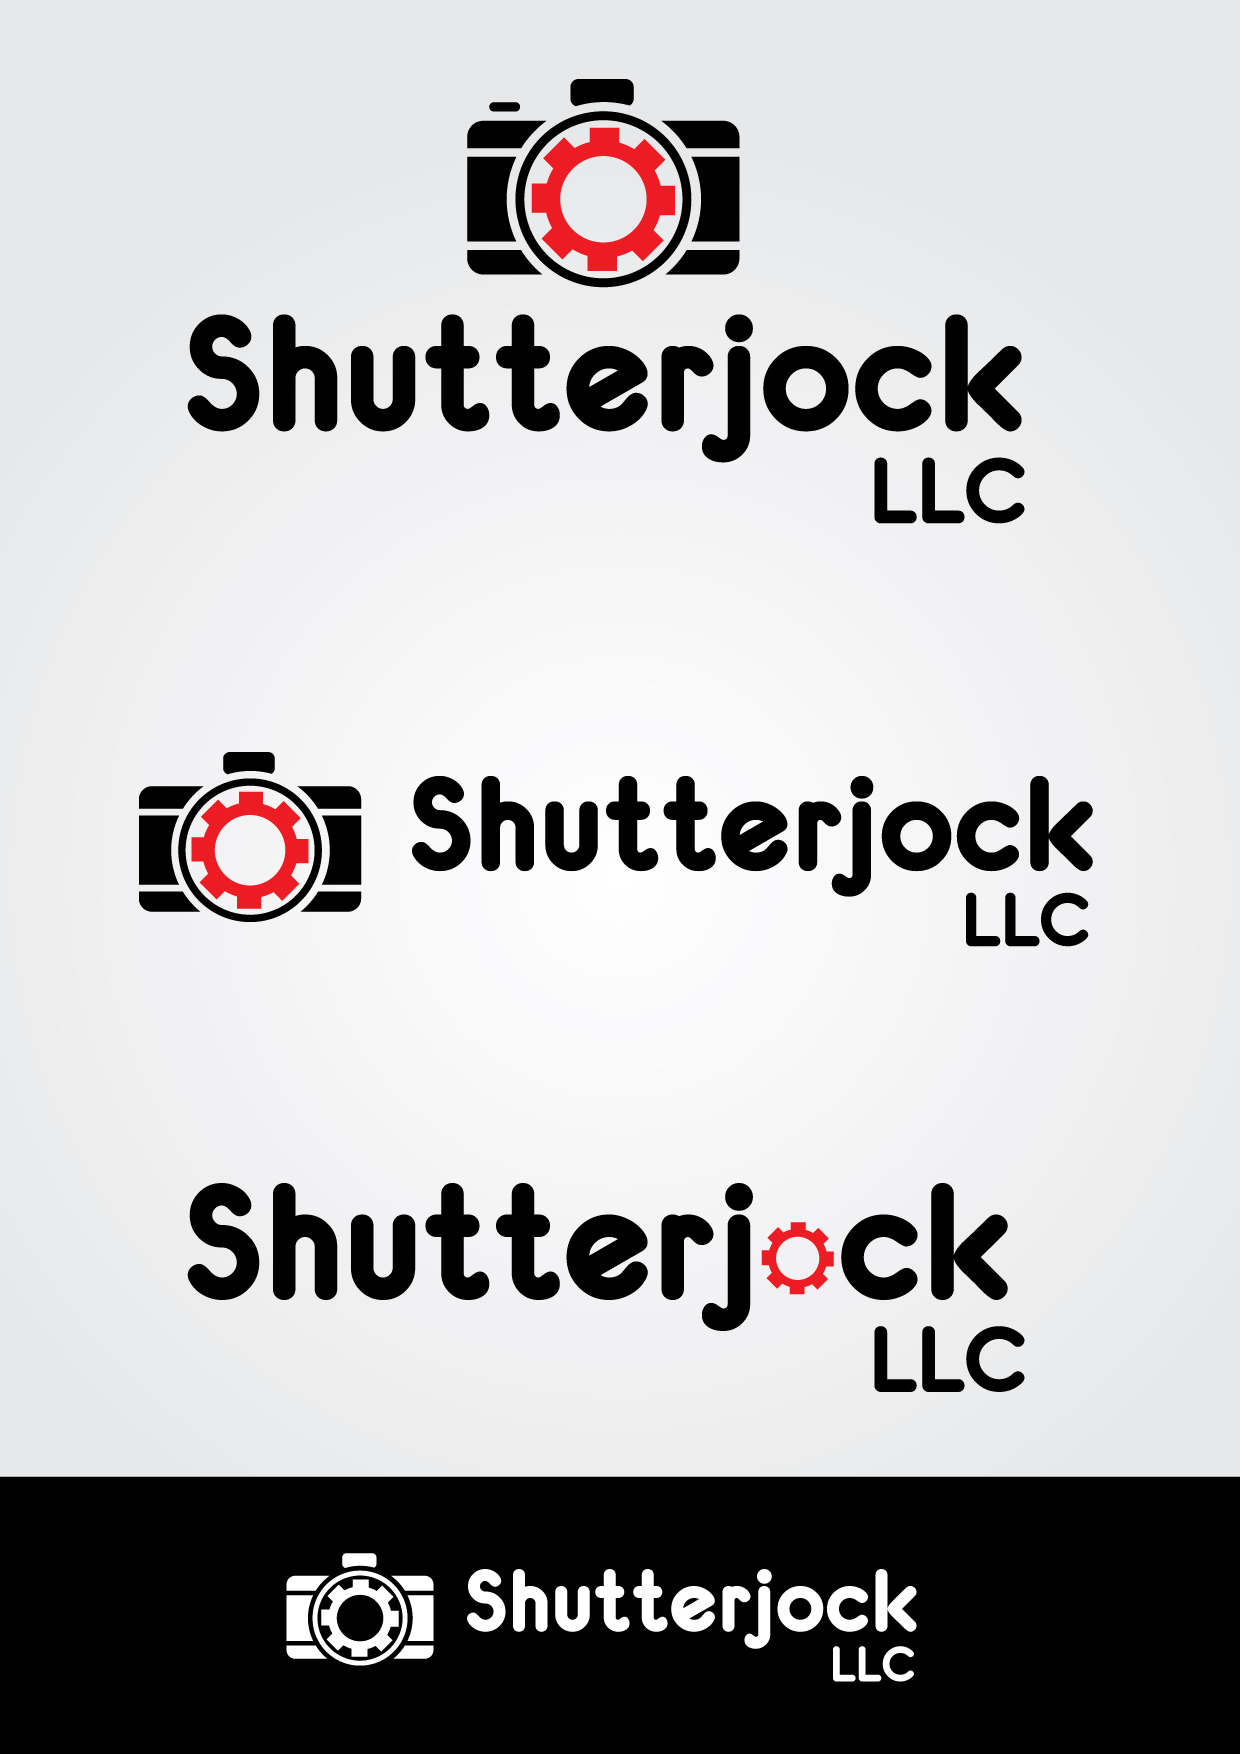 Logo Design by mediaproductionart - Entry No. 57 in the Logo Design Contest Unique Logo Design Wanted for Shutterjock LLC.